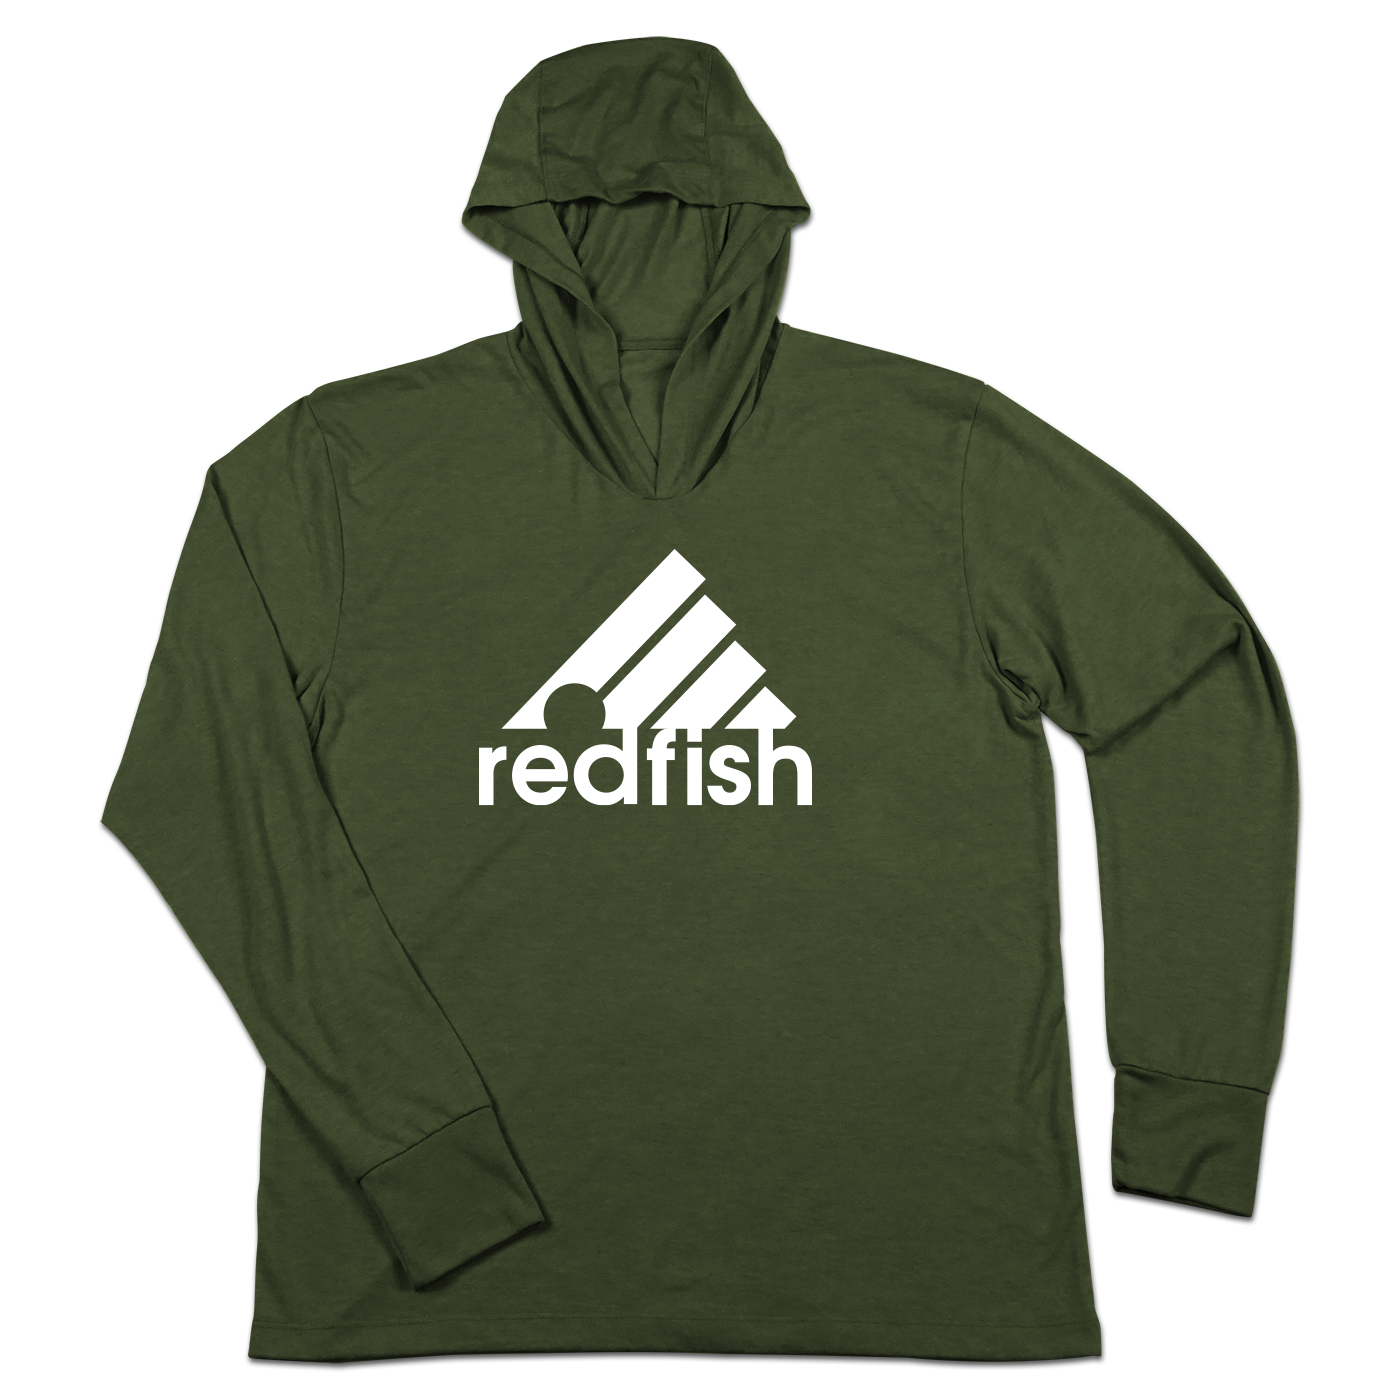 #REDFISH TriBlend Hoodie Shirt - Hat Mount for GoPro